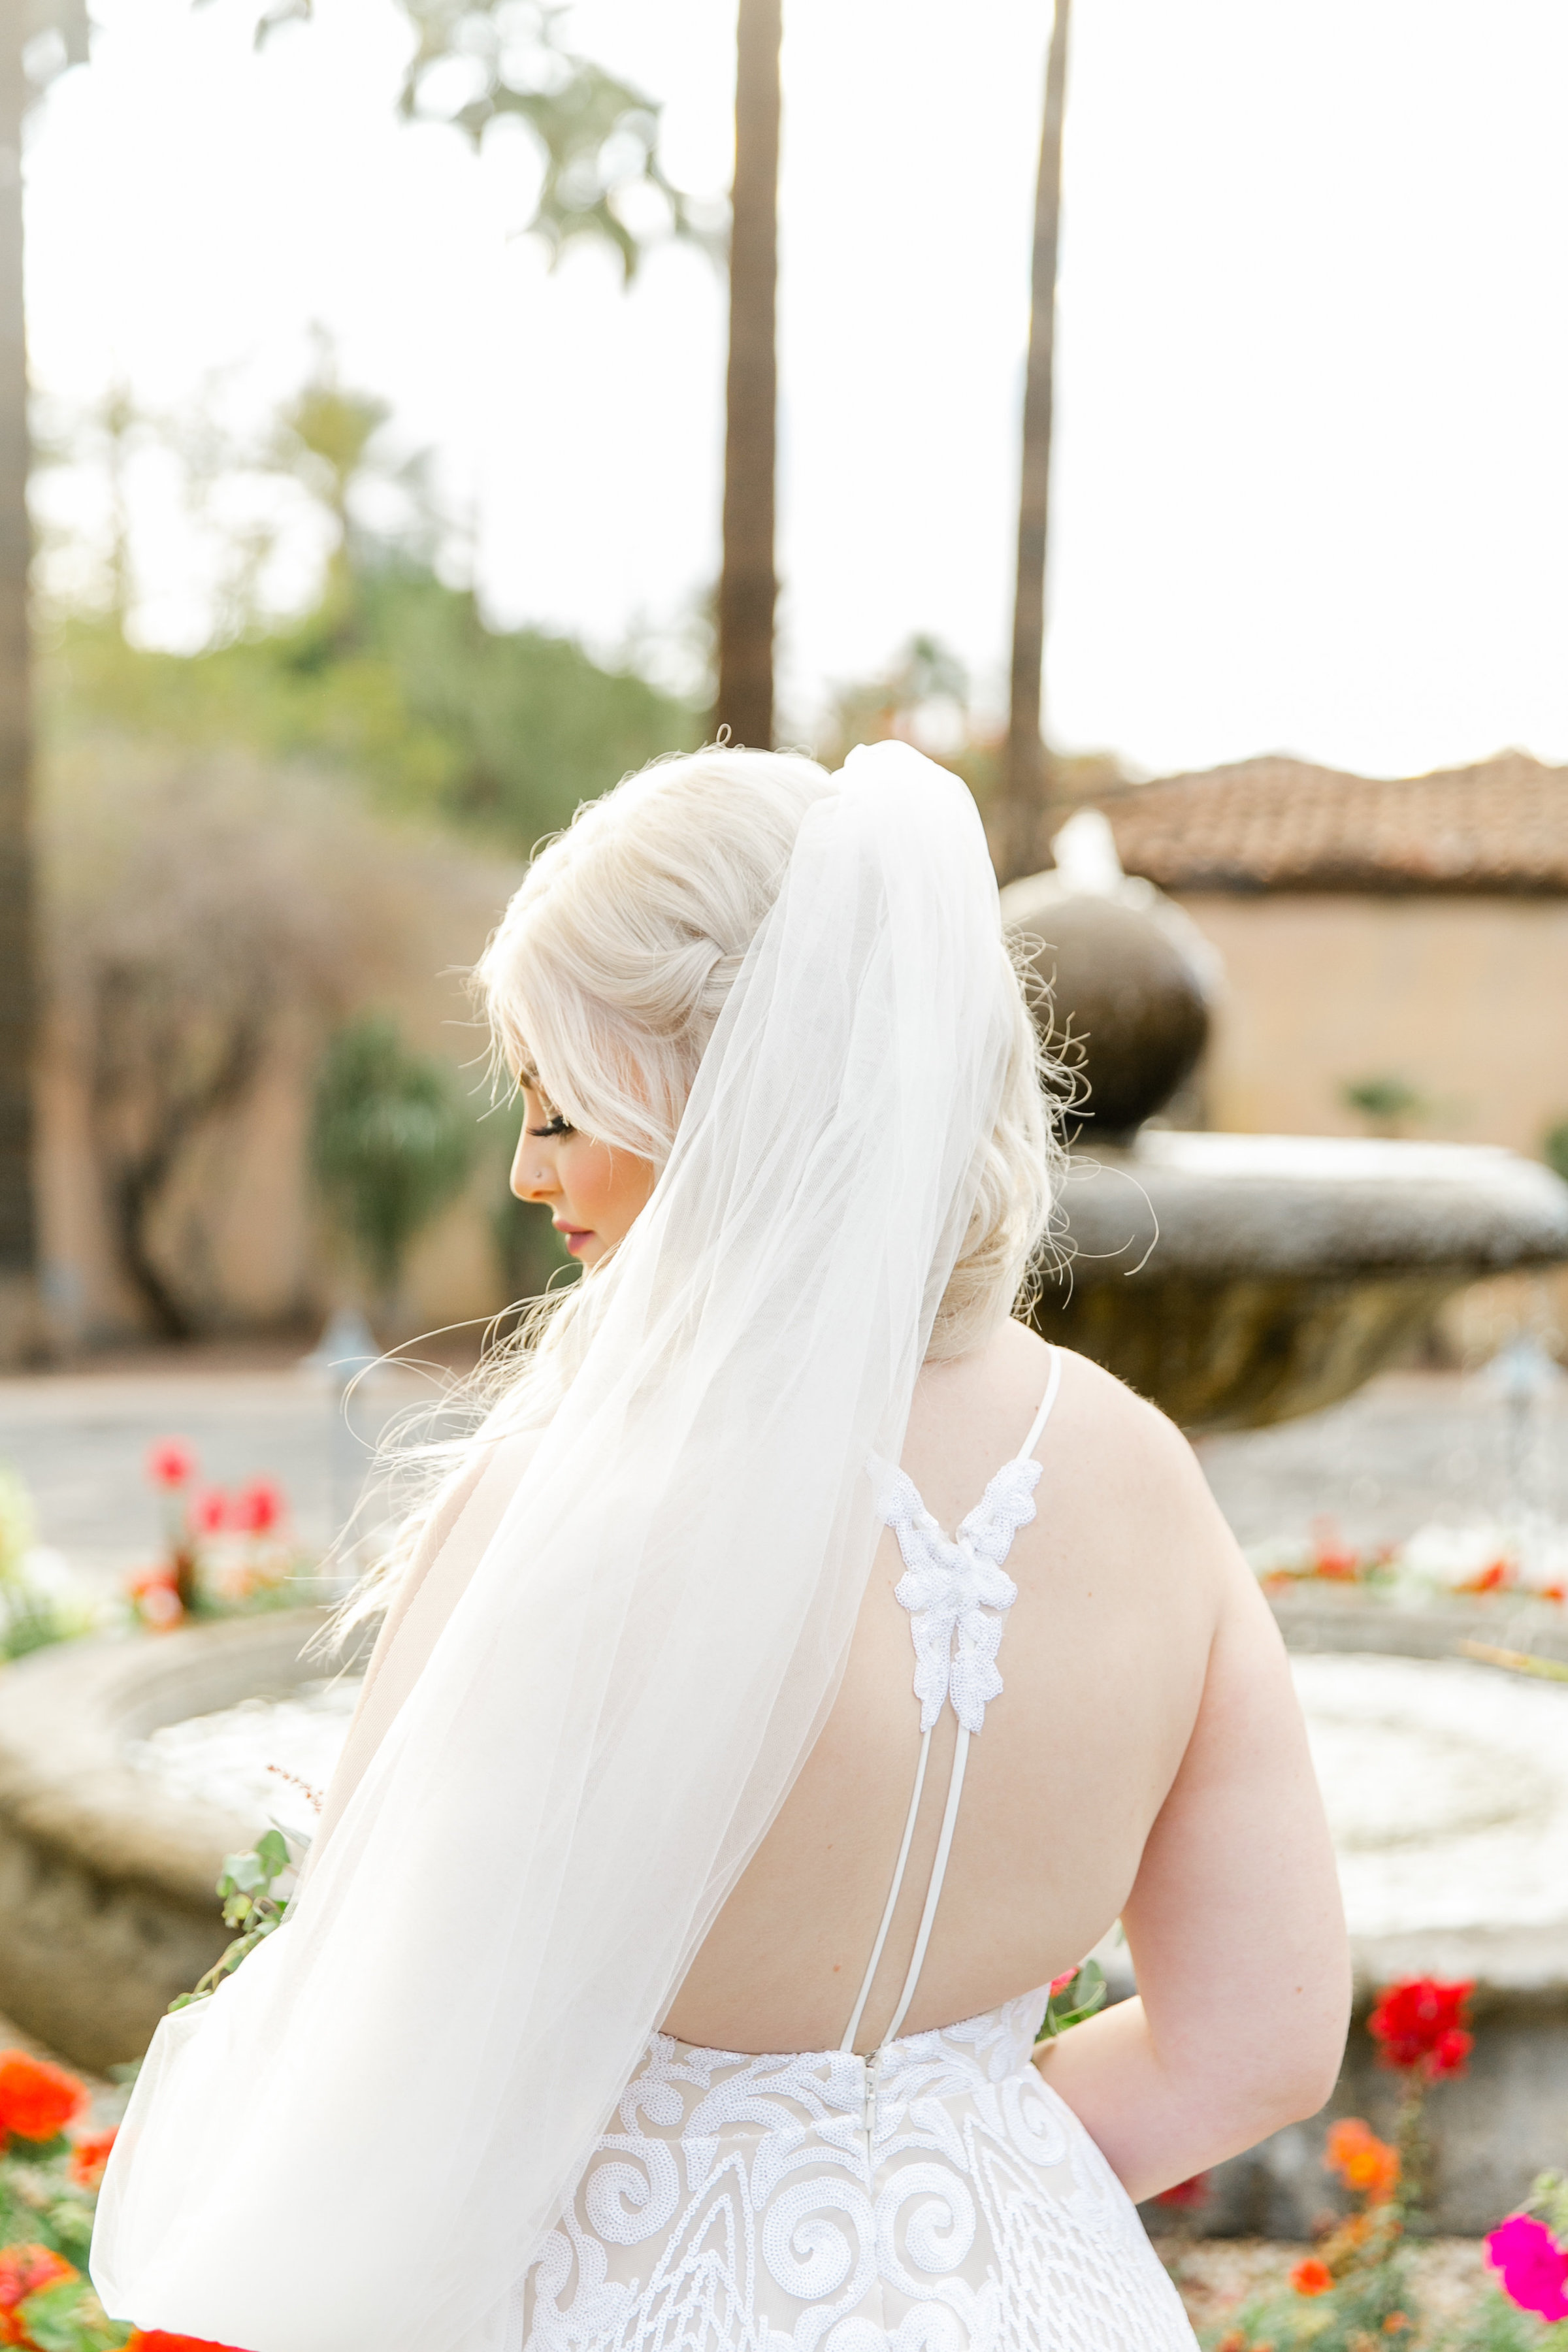 Karlie Colleen Photography - The Royal Palms Wedding - Some Like It Classic - Alex & Sam-559